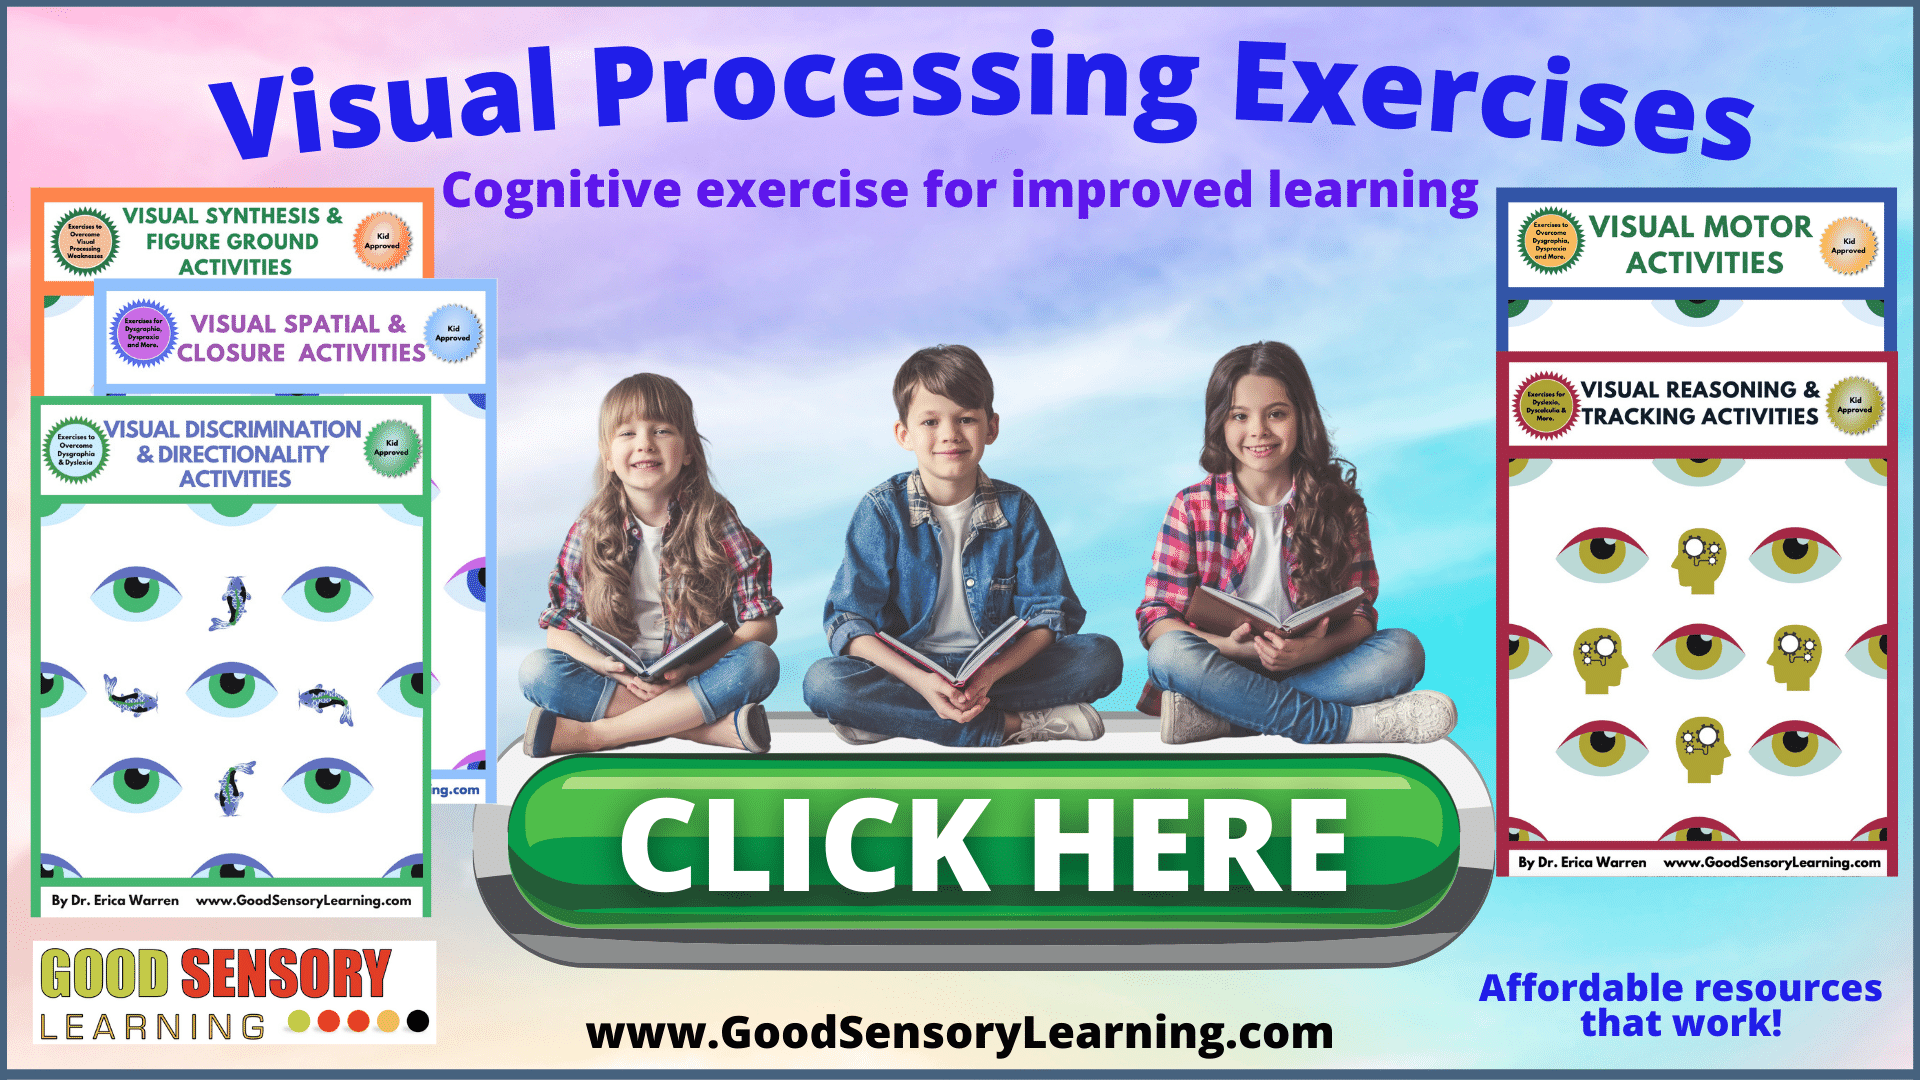 Happy kids and doing visual processing exercises